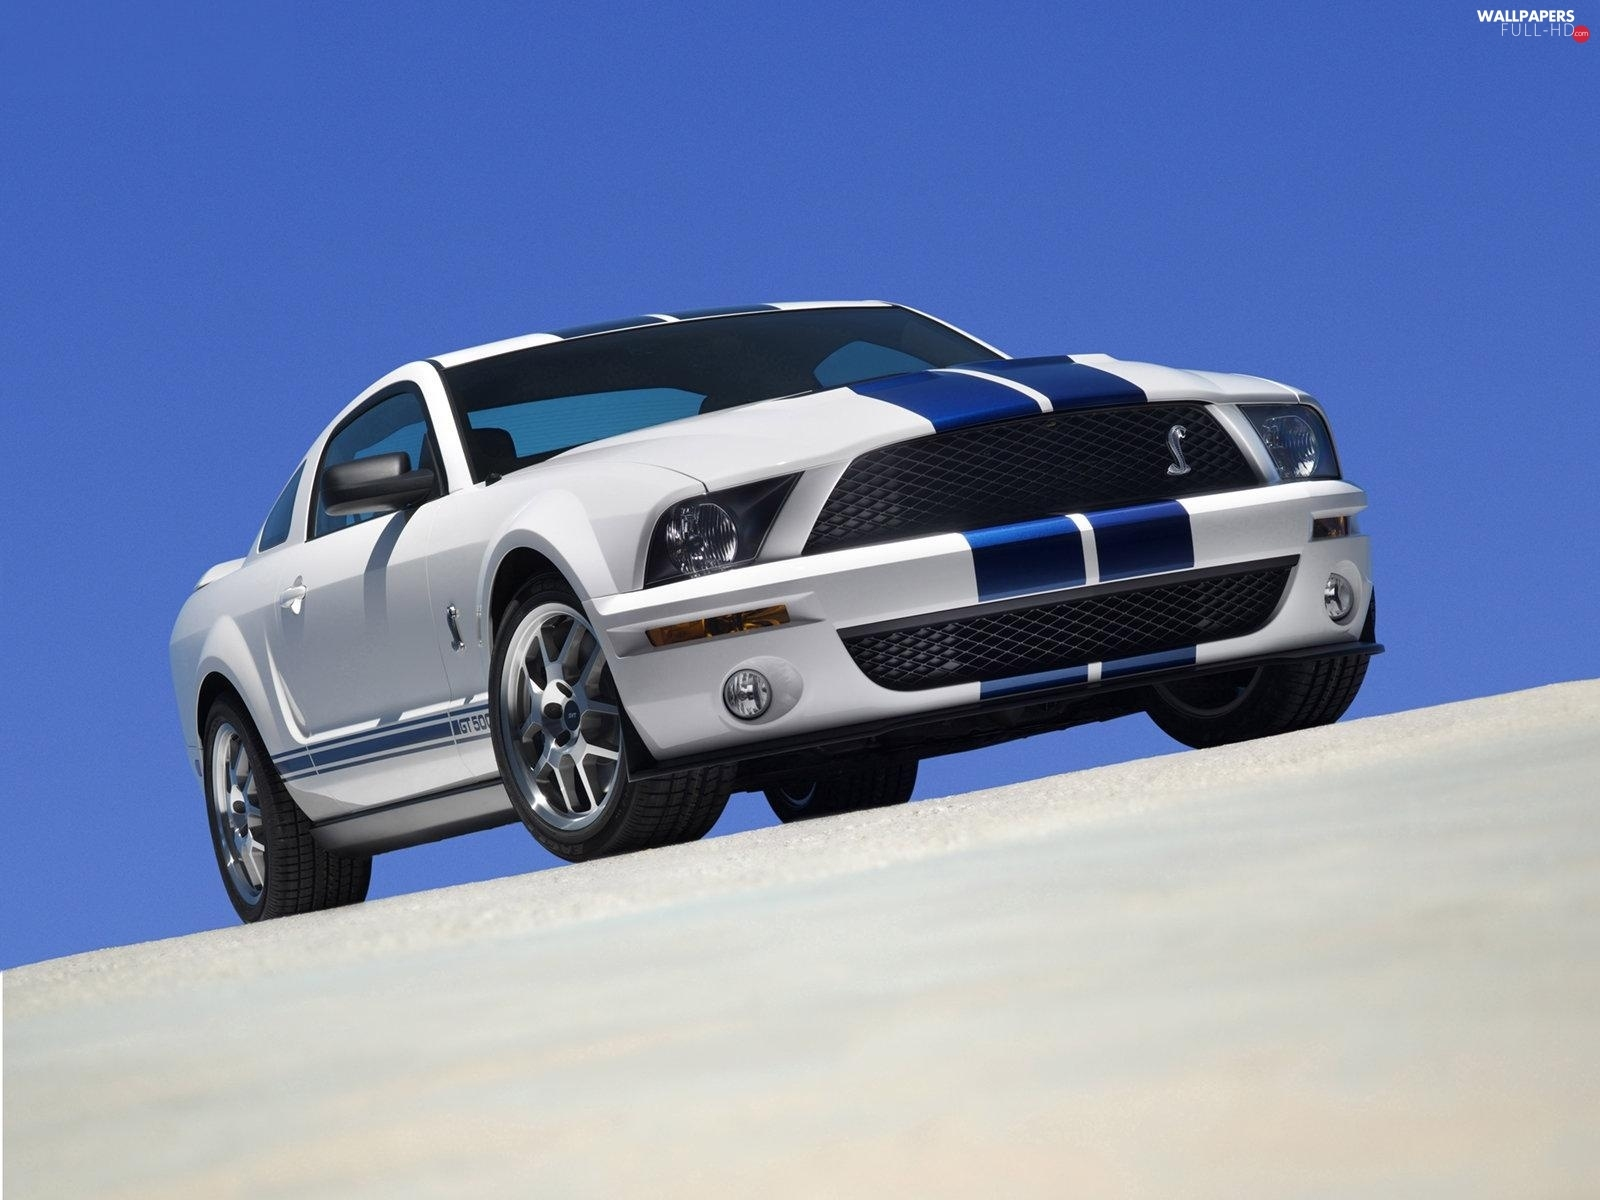 GT500, Ford Mustang, pack, Shelby